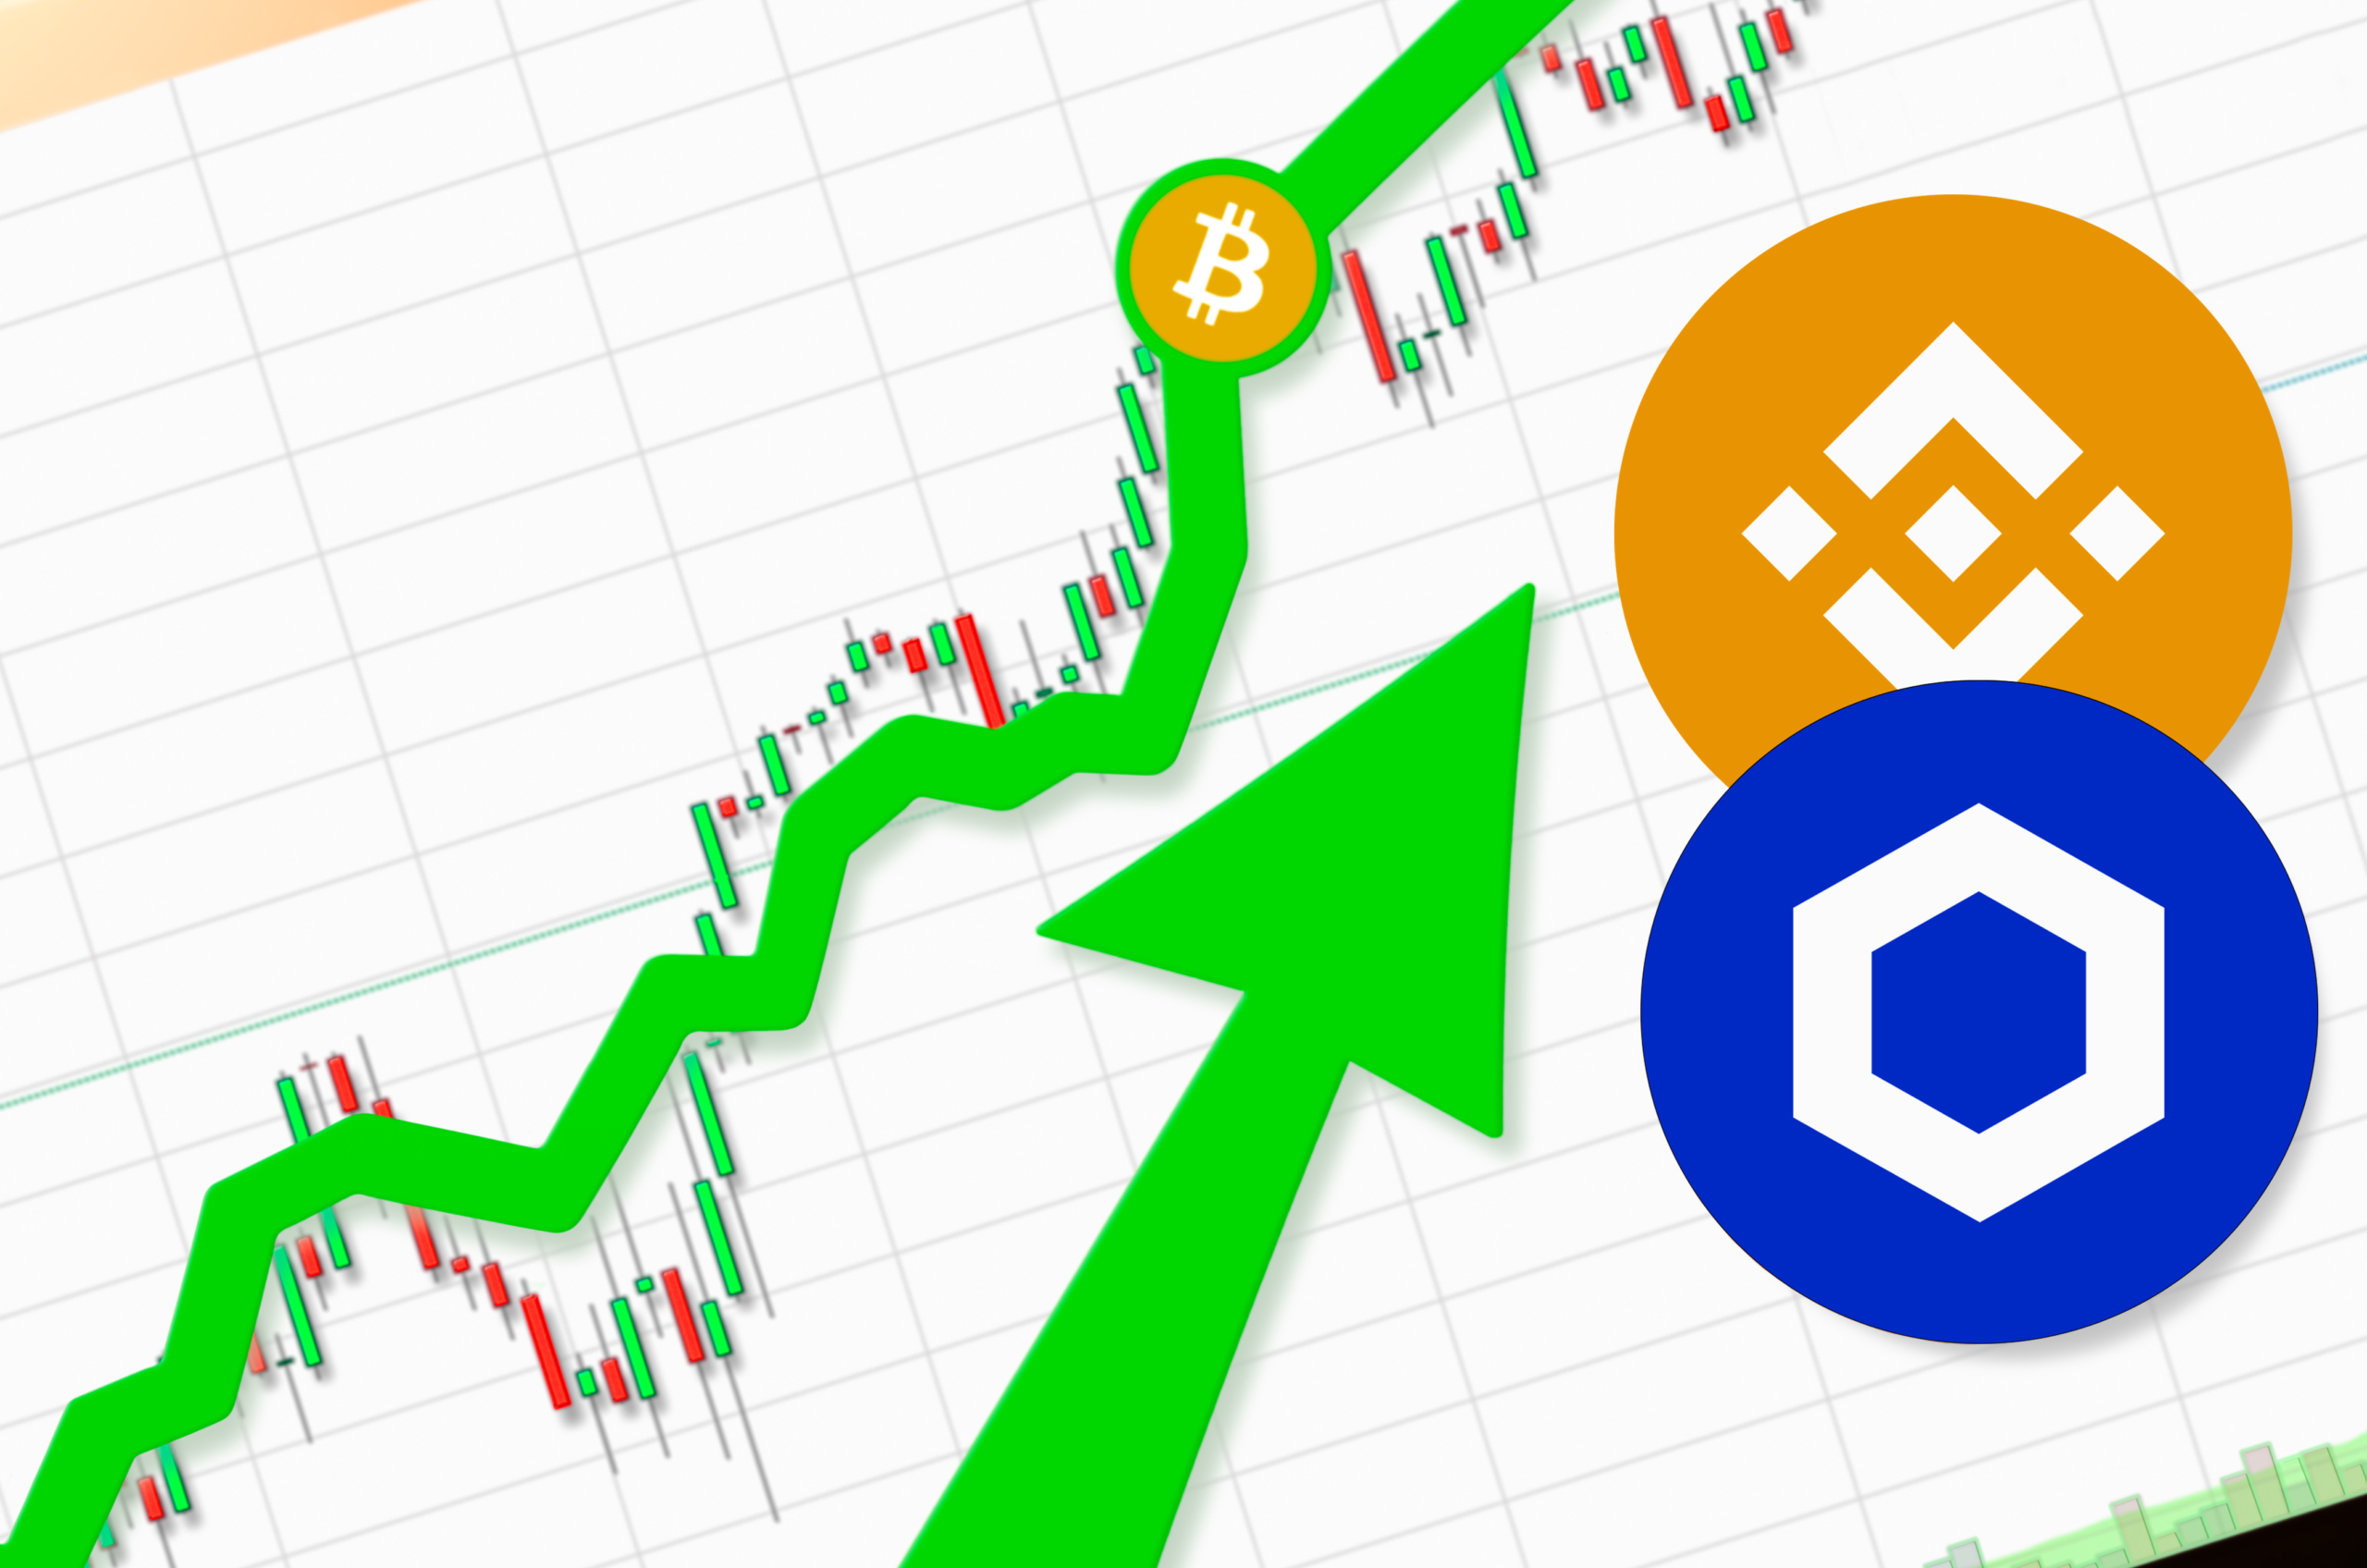 Chainlink and binance coin hit all time high